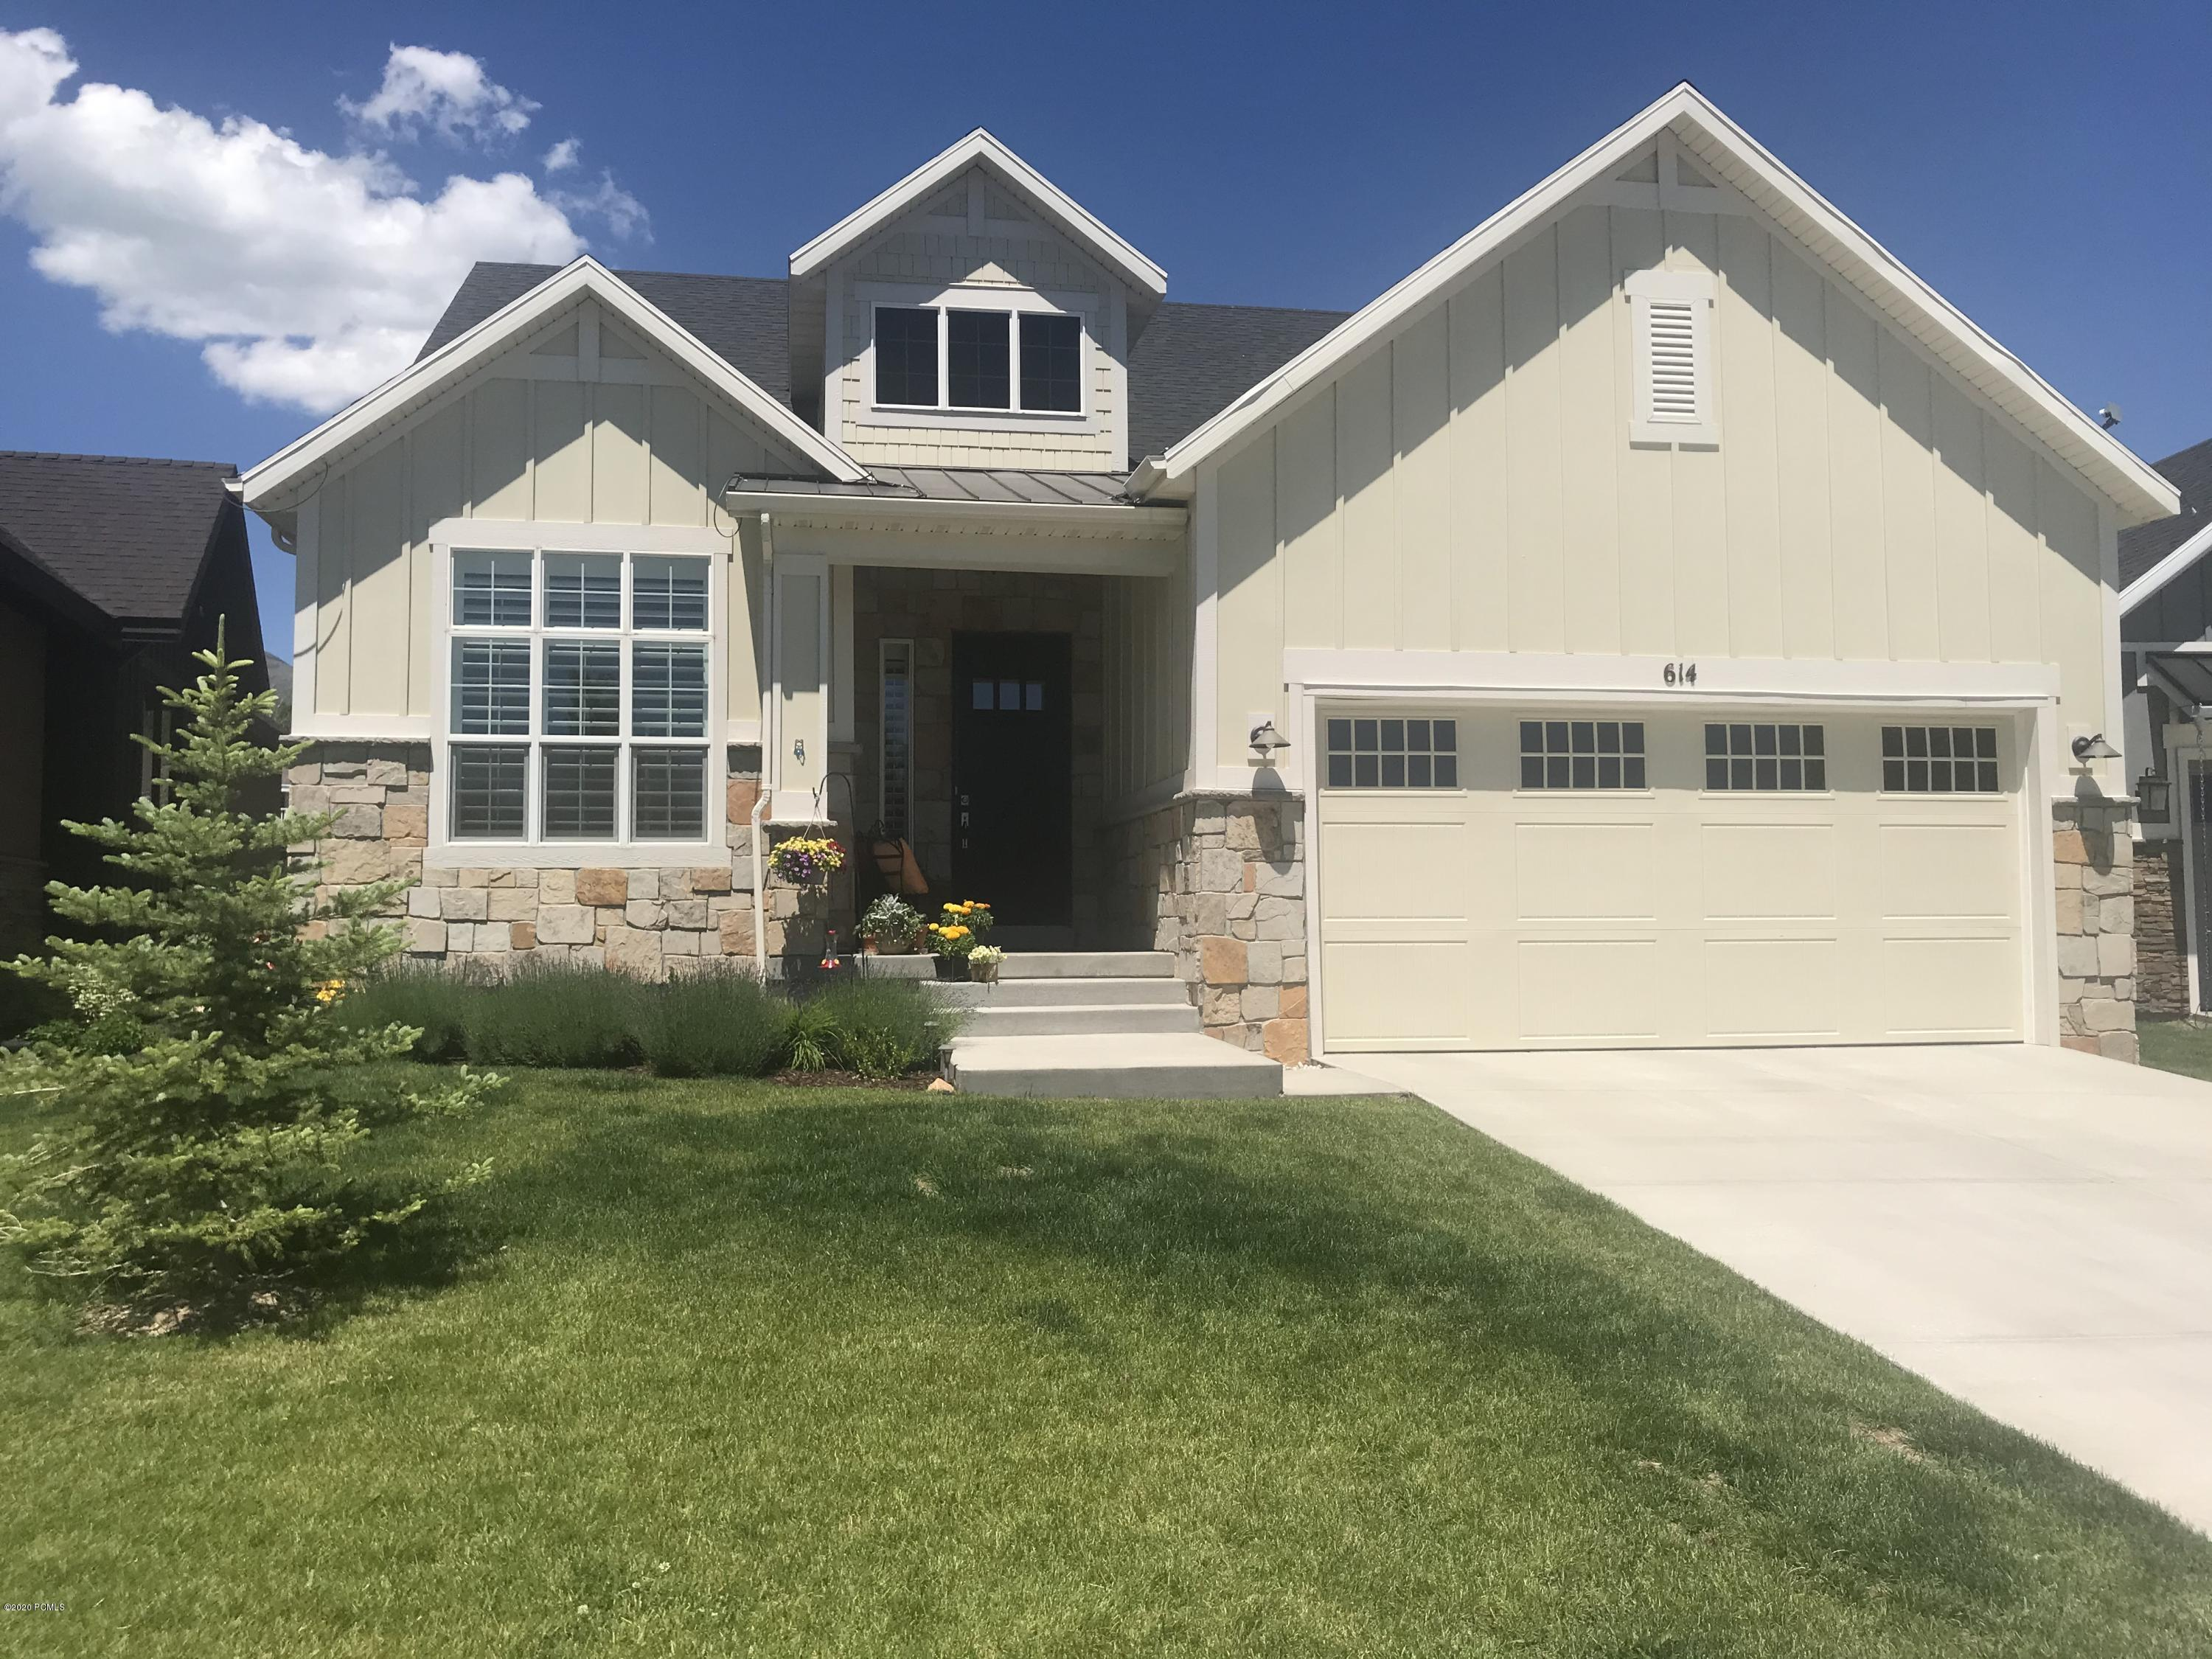 614 St Andrews Drive, Midway, Utah 84049, 3 Bedrooms Bedrooms, ,3 BathroomsBathrooms,Single Family,For Sale,St Andrews,12002215